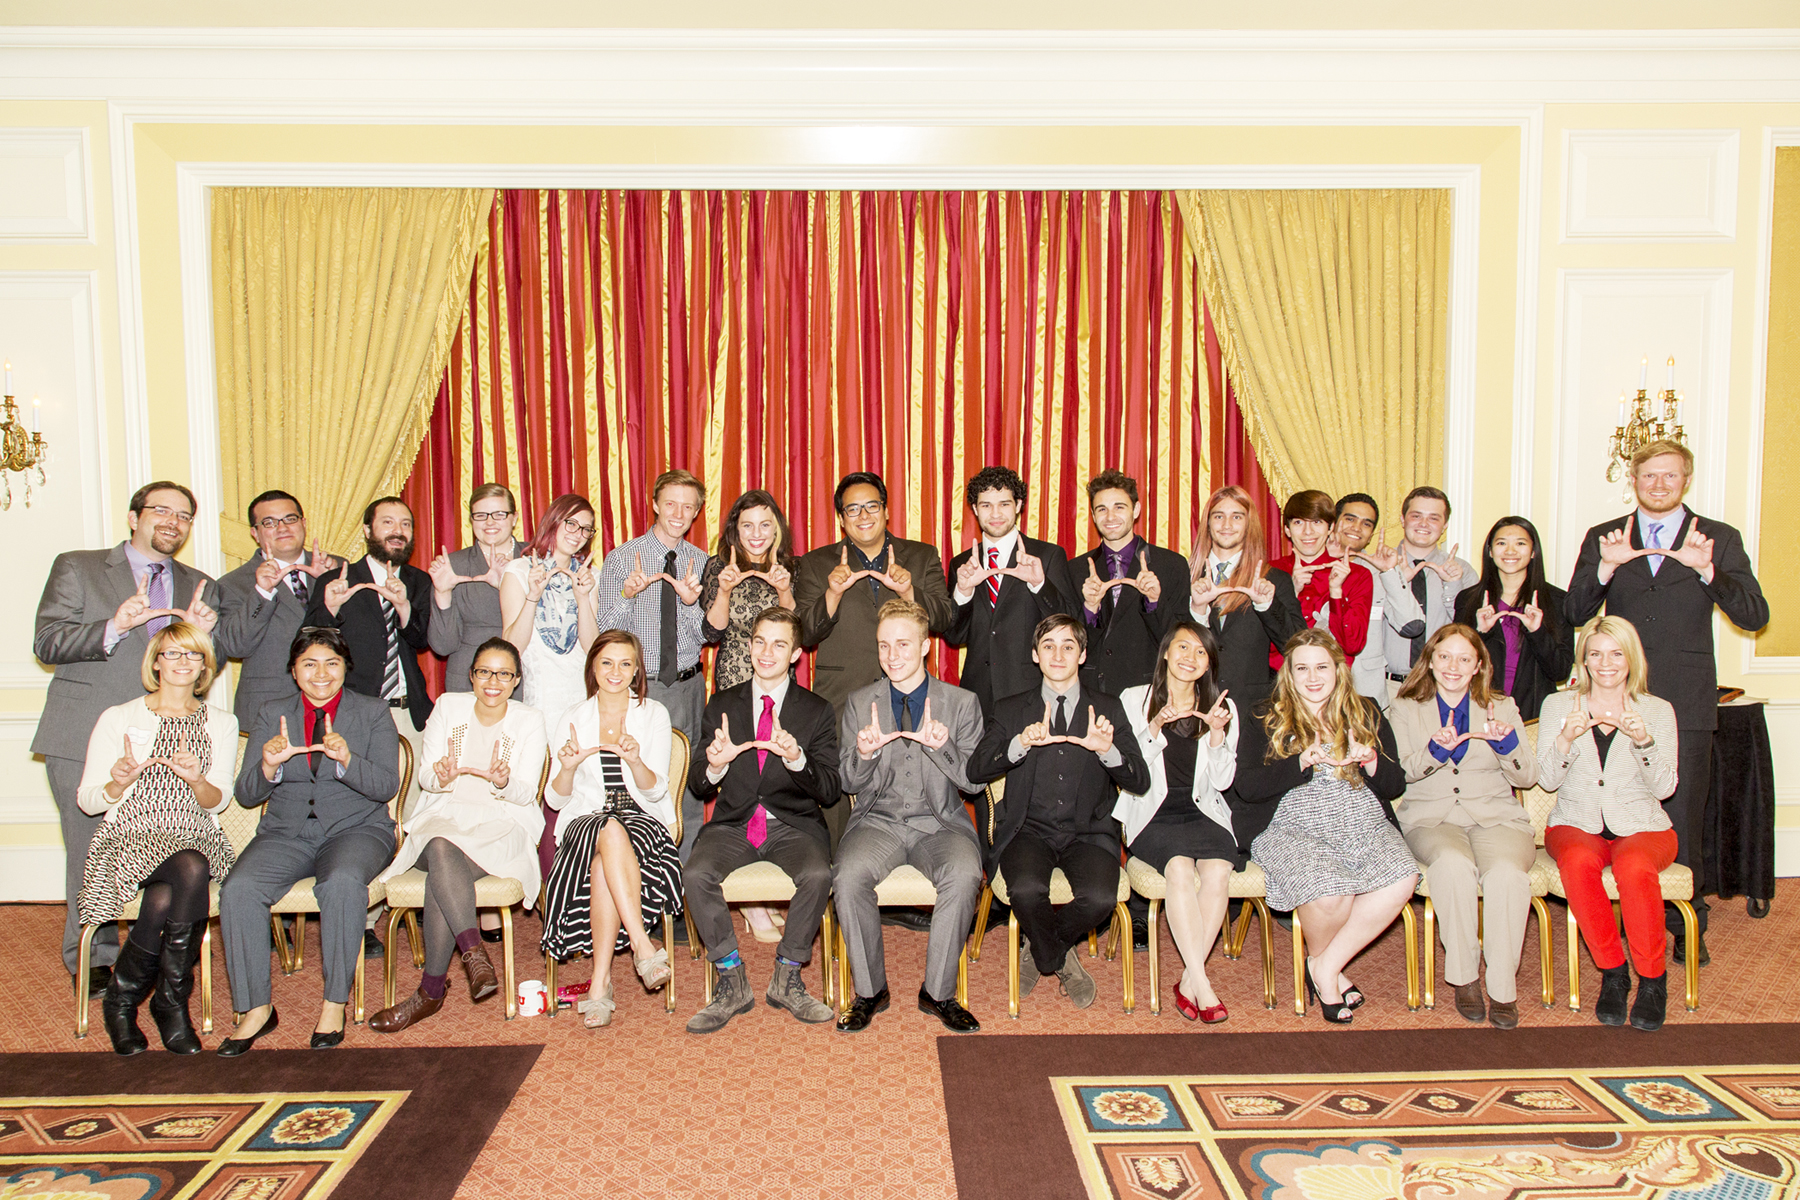 The U's John R. Park Debate Society was celebrated April 6 at the Department of Communication's annual awards banquet.